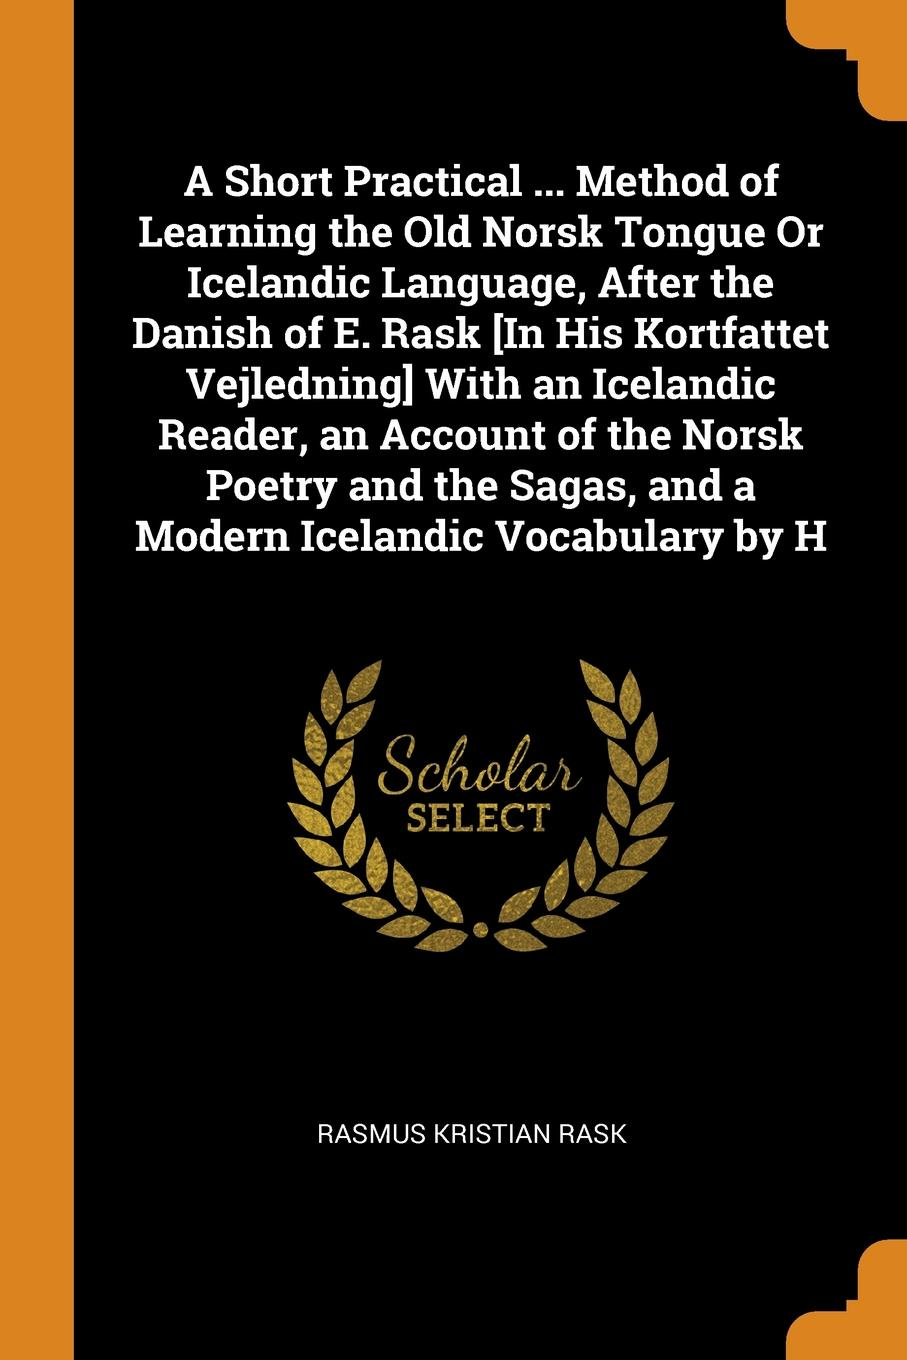 Rasmus Kristian Rask A Short Practical ... Method of Learning the Old Norsk Tongue Or Icelandic Language, After the Danish of E. Rask .In His Kortfattet Vejledning. With an Icelandic Reader, an Account of the Norsk Poetry and the Sagas, and a Modern Icelandic Vocabula... george bayldon an elementary grammar of the old norse or icelandic language